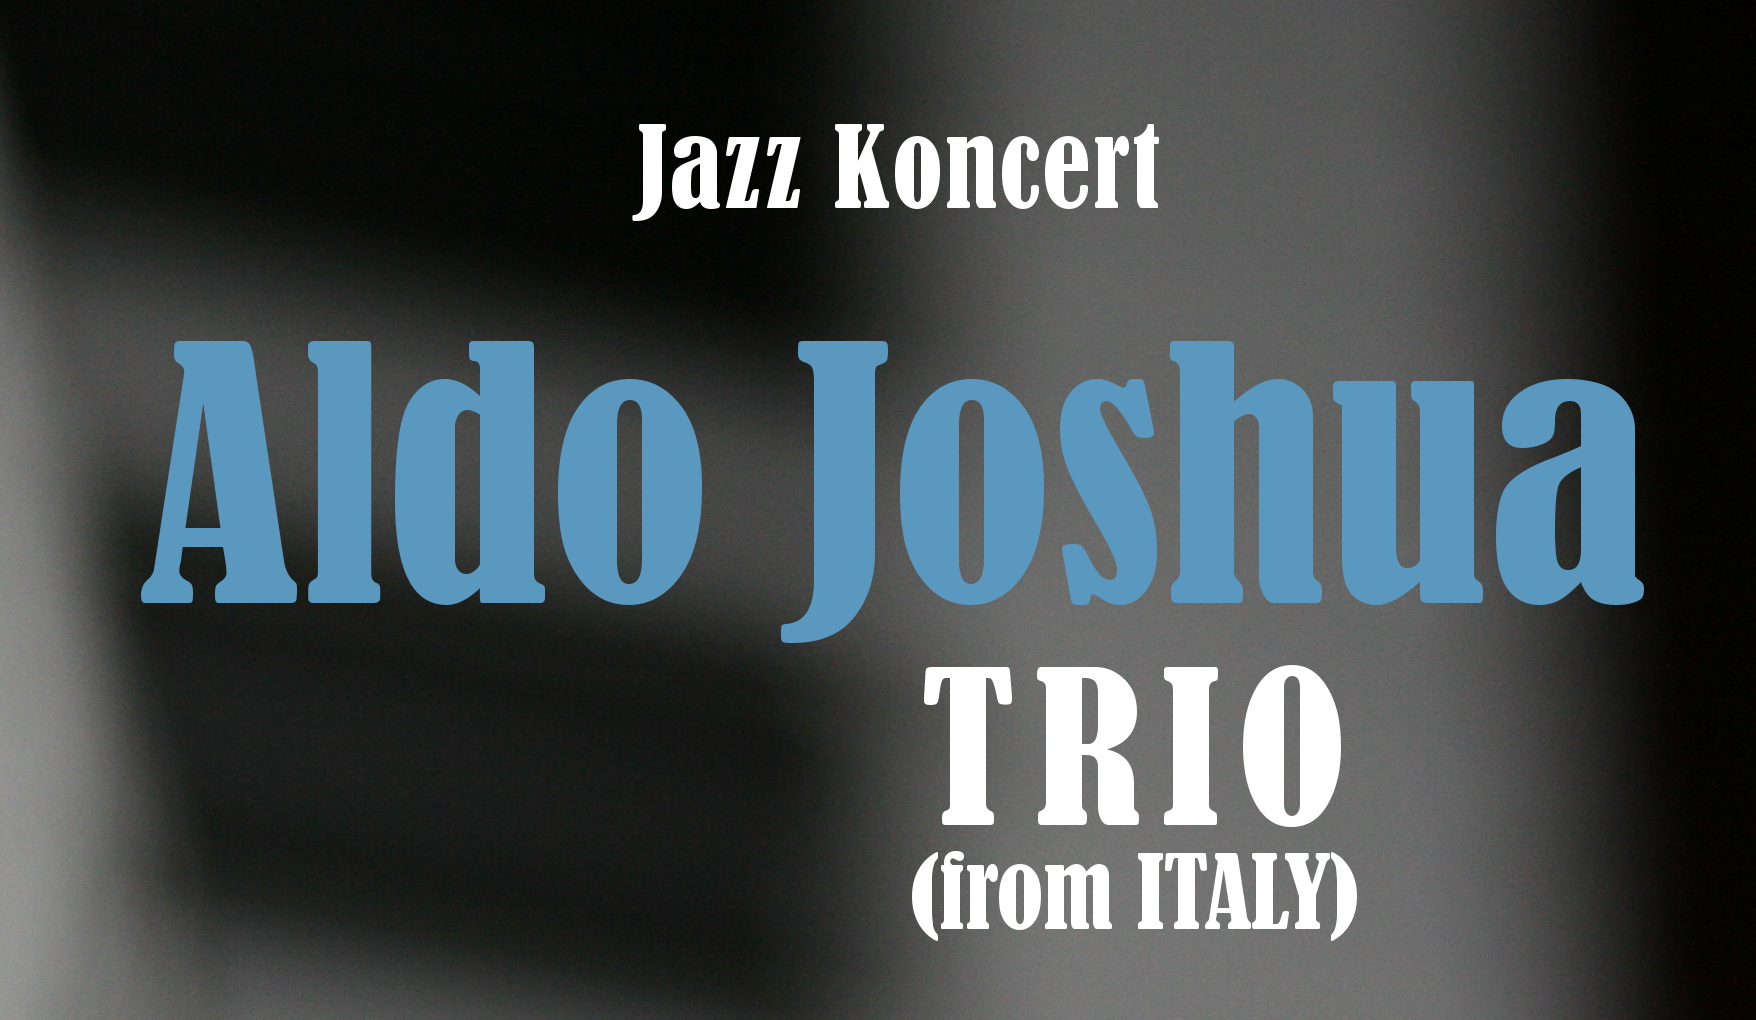 Aldo Joshua Trio (from Italy)